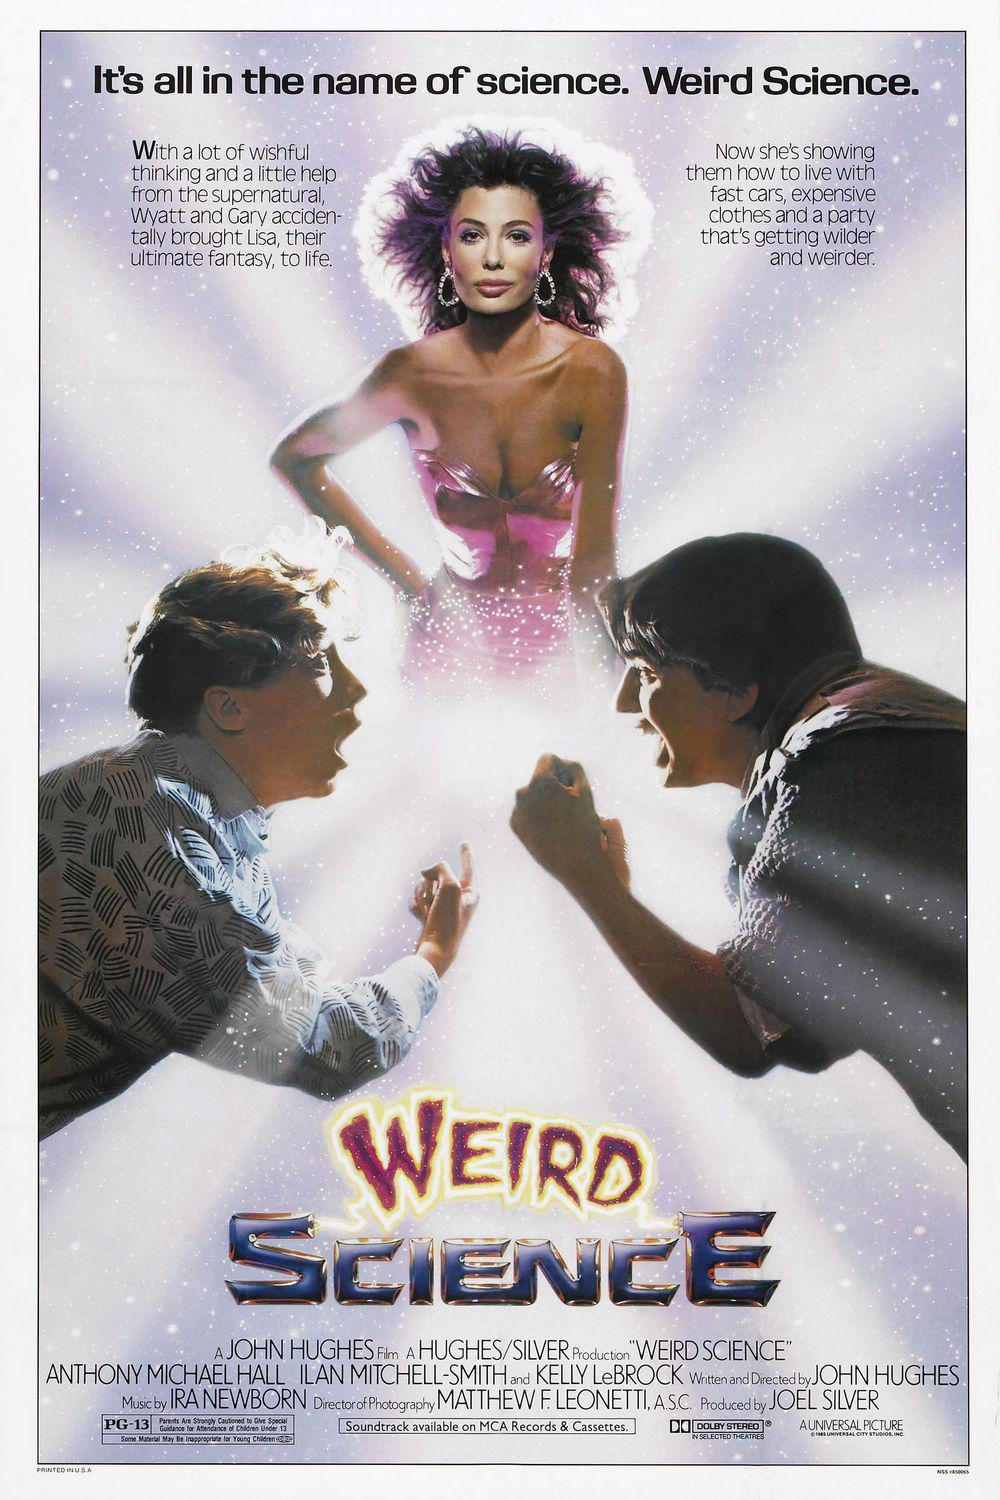 La Donna Esplosiva - Weird Science - film 80s con Kelly LeBroc, Robert Dawney Jr e Anthony Michael Hall